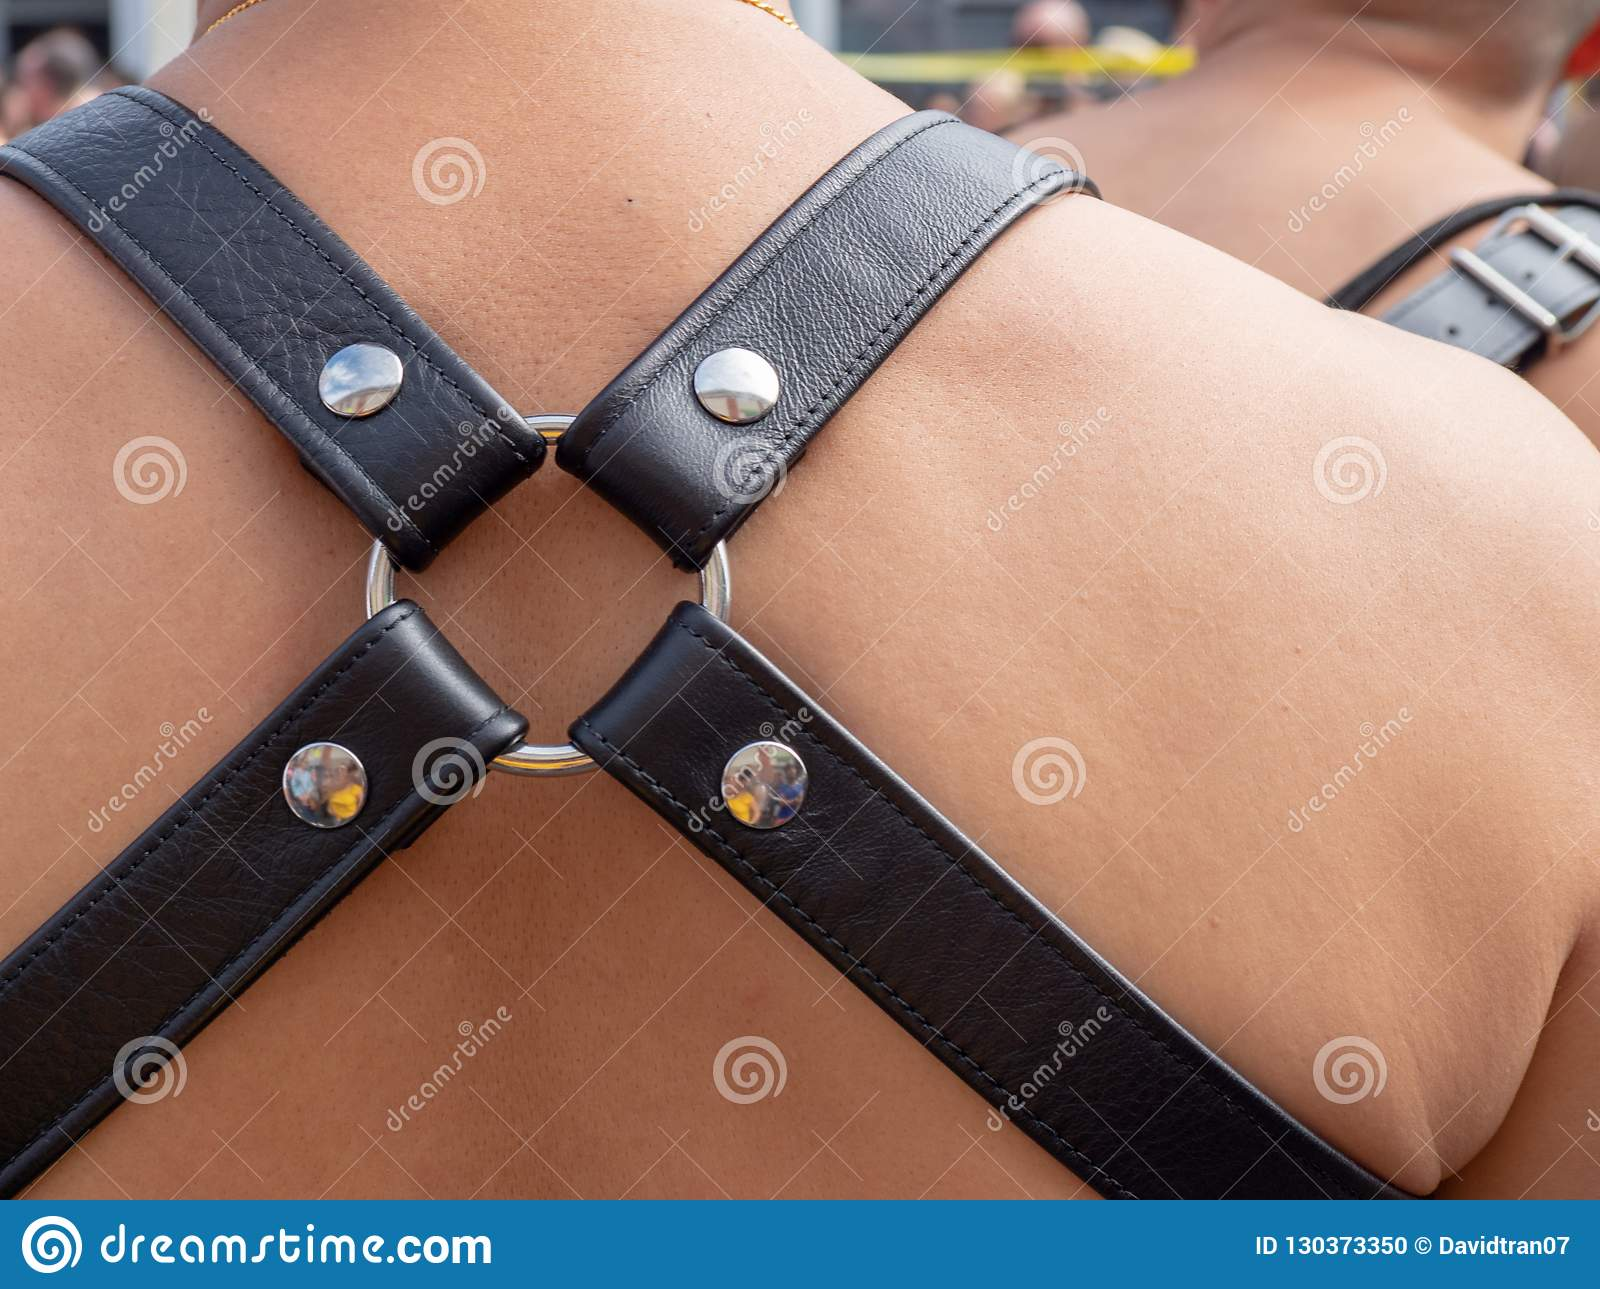 hight resolution of shirtless white man wearing a quad strap leather harness